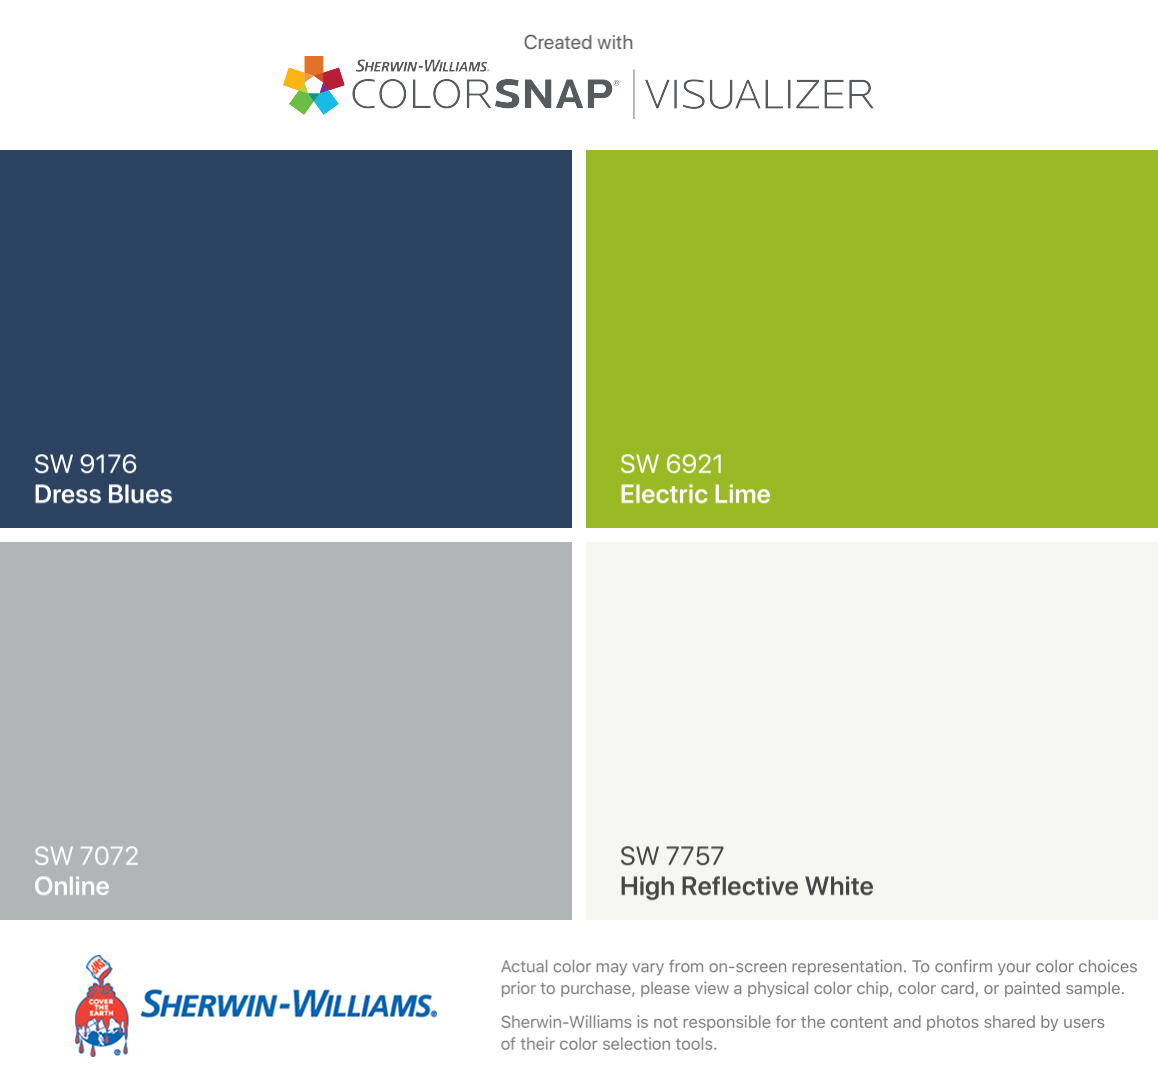 I Found These Colors With Colorsnap Visualizer For Iphone By Sherwin Williams Dress Blues Sw 9176 Online Sw 7072 Color Chip Sherwin Williams Color Card [ 1088 x 1158 Pixel ]